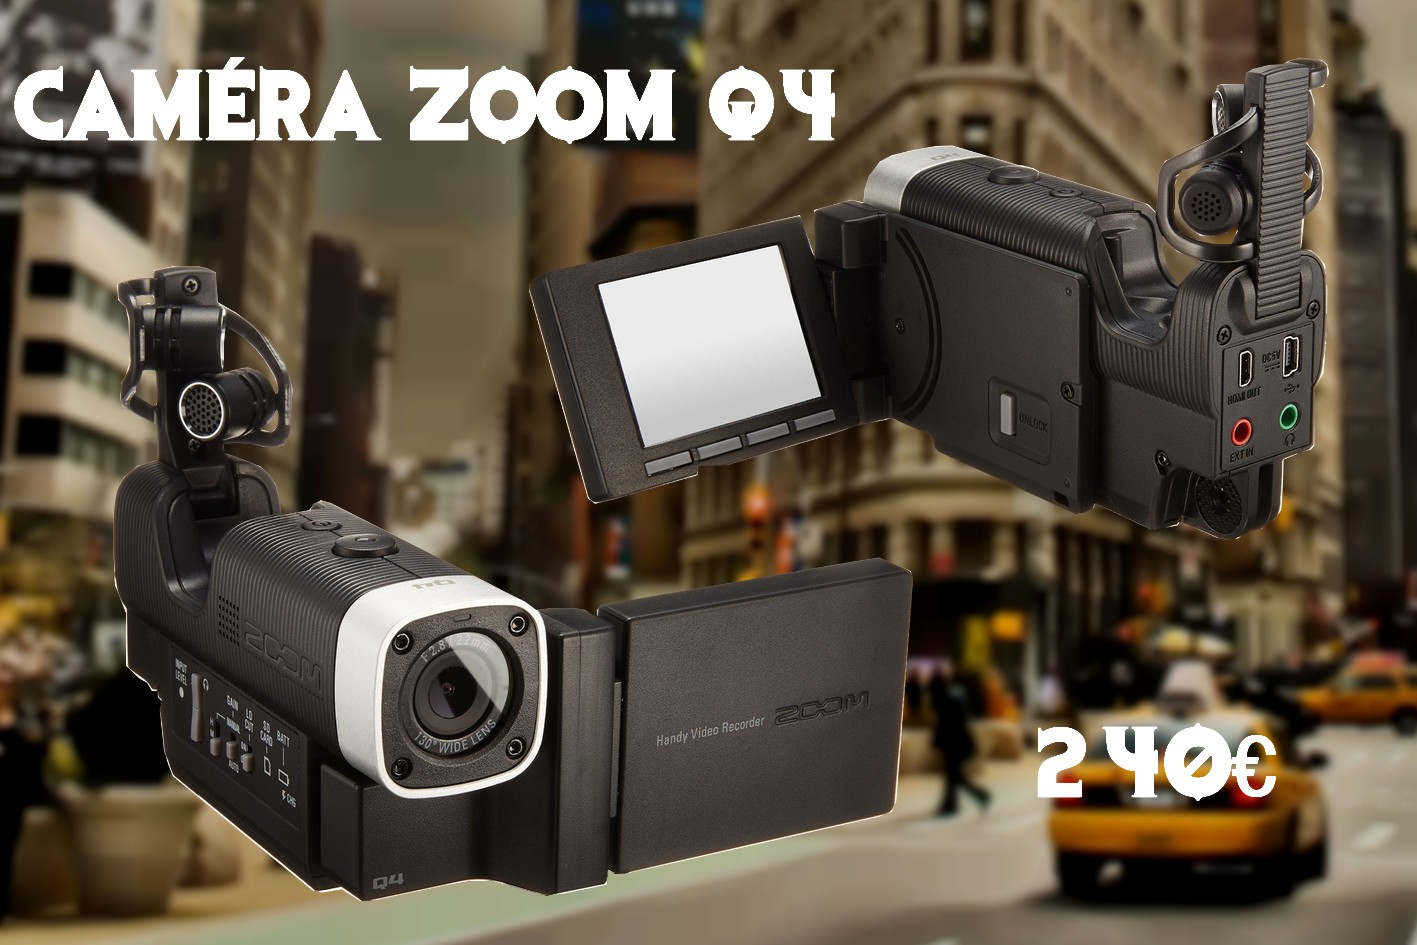 Bon plan camera vlog miniature zoom q4